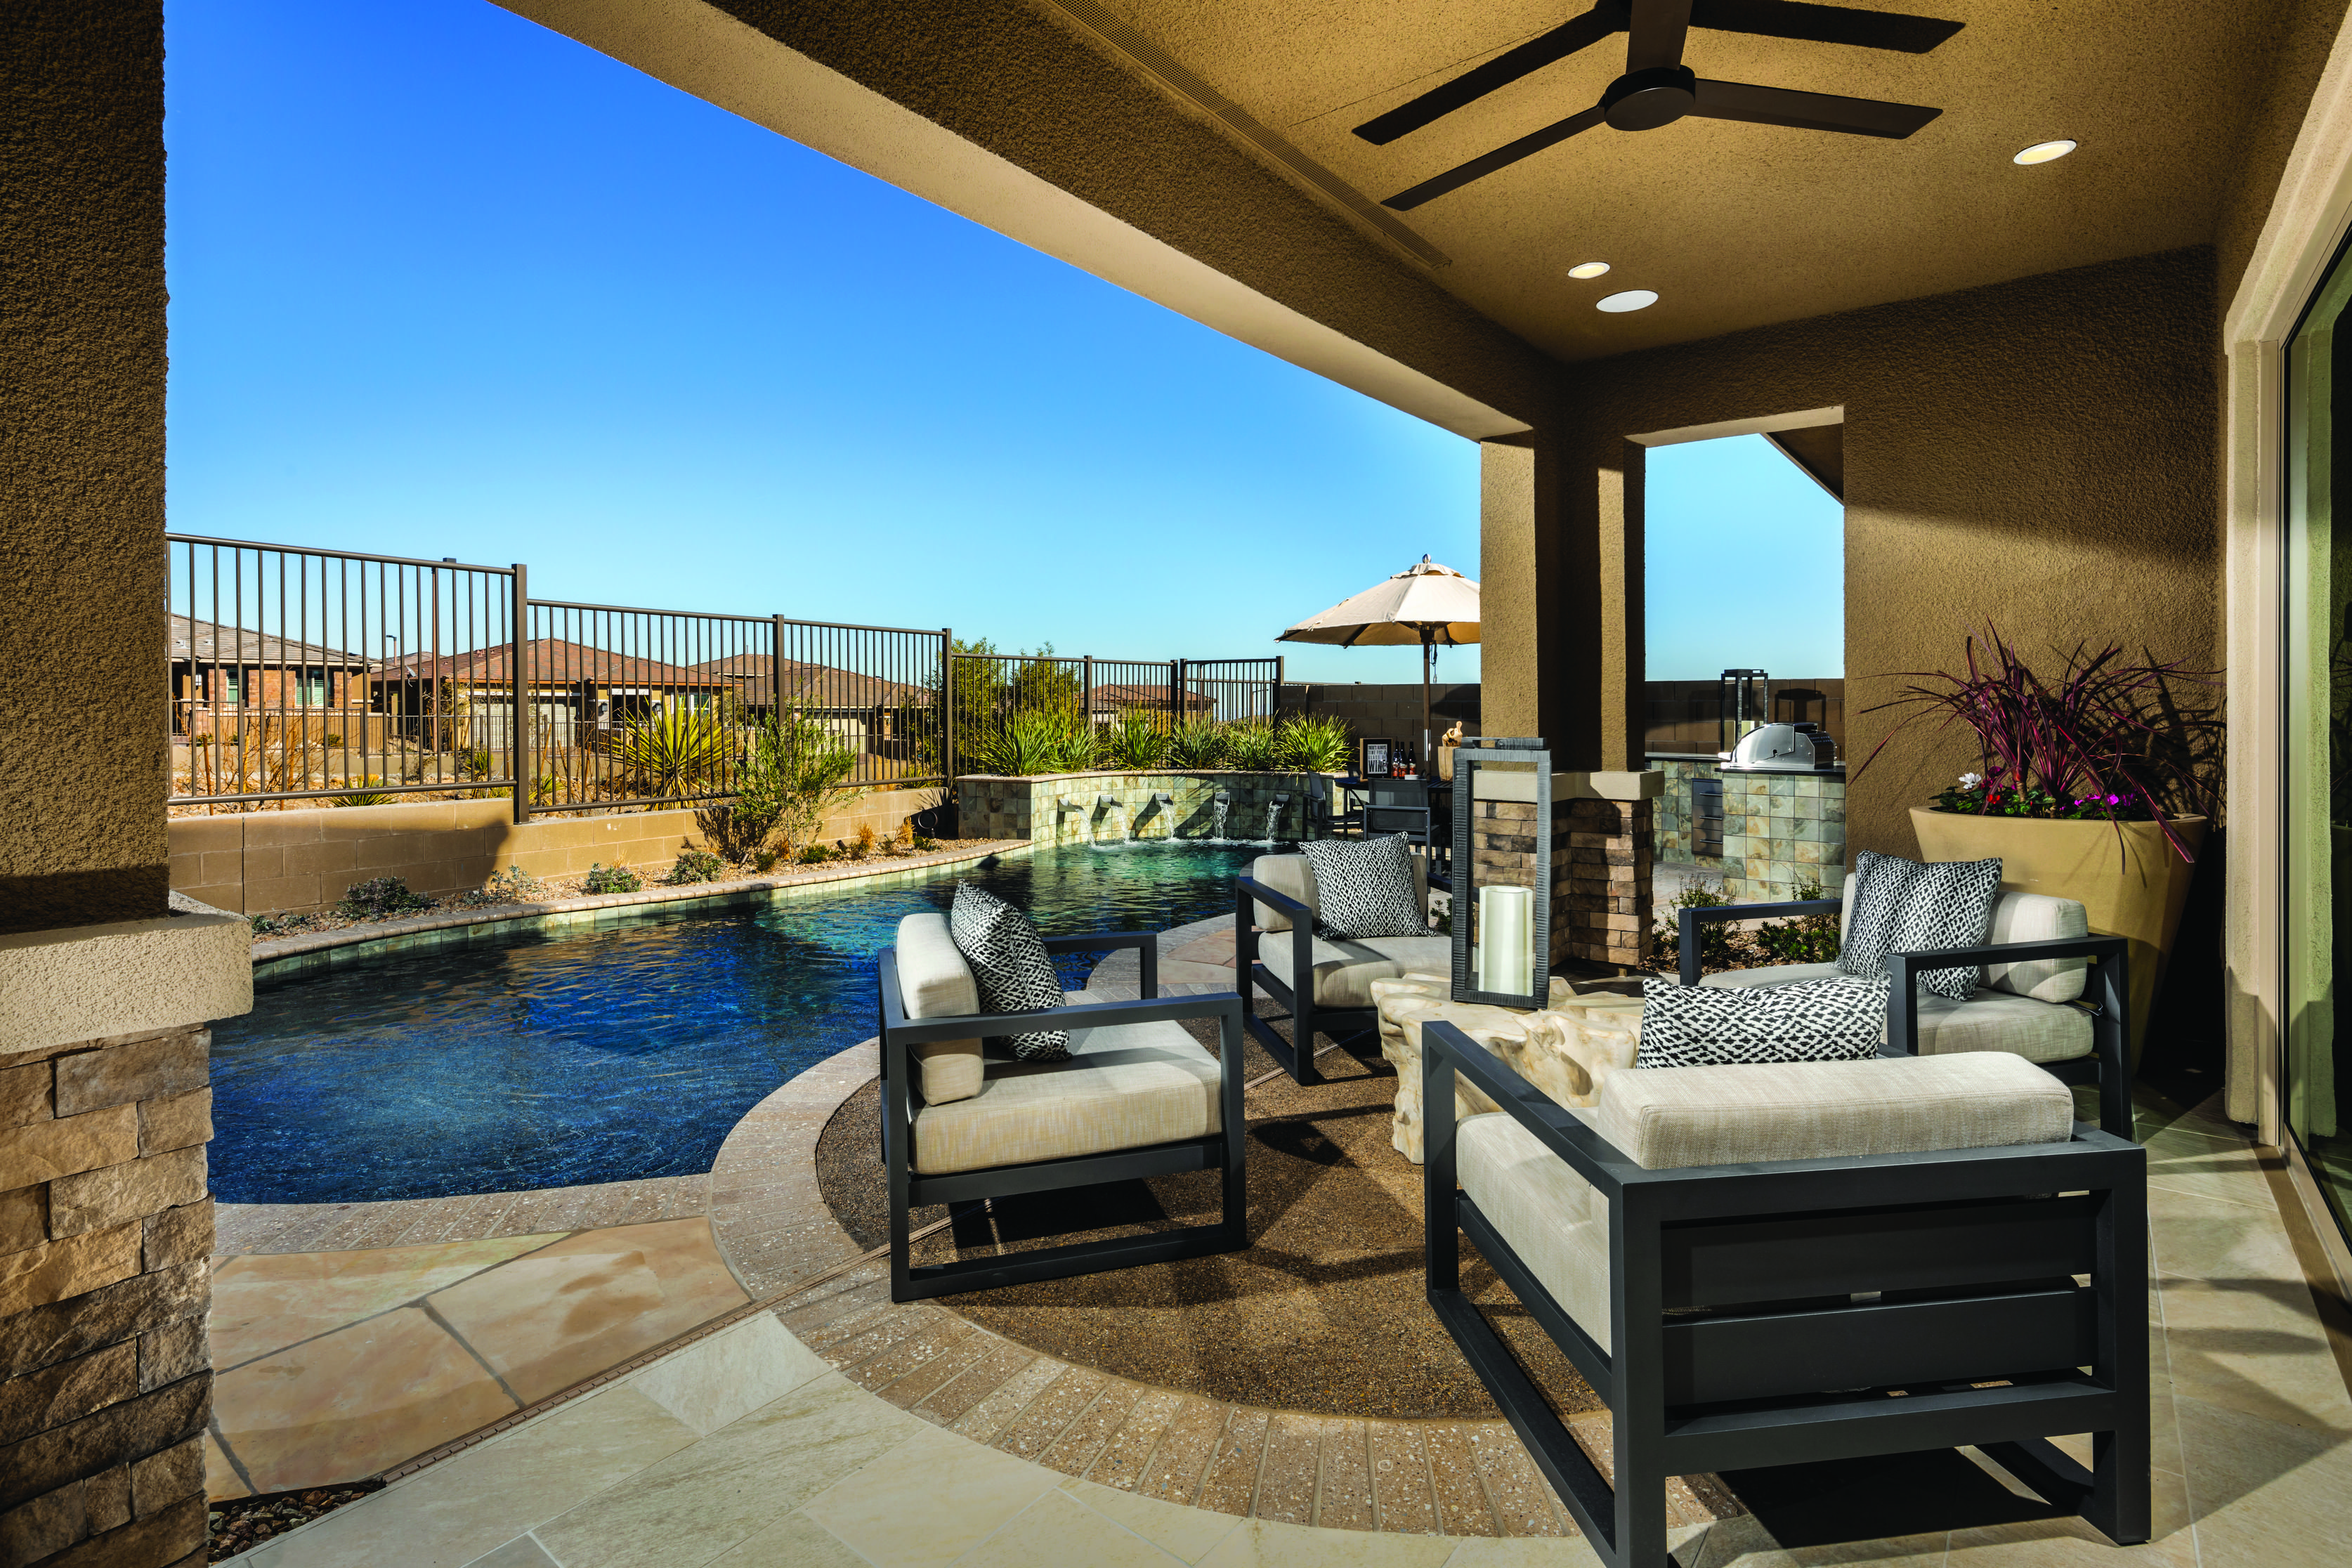 Make A Splash With This Impressive Outdoor Room And Pool From Shadow Point Solstice Model Home In Las Vegas Nv Luxury Homes House Design Highland Homes